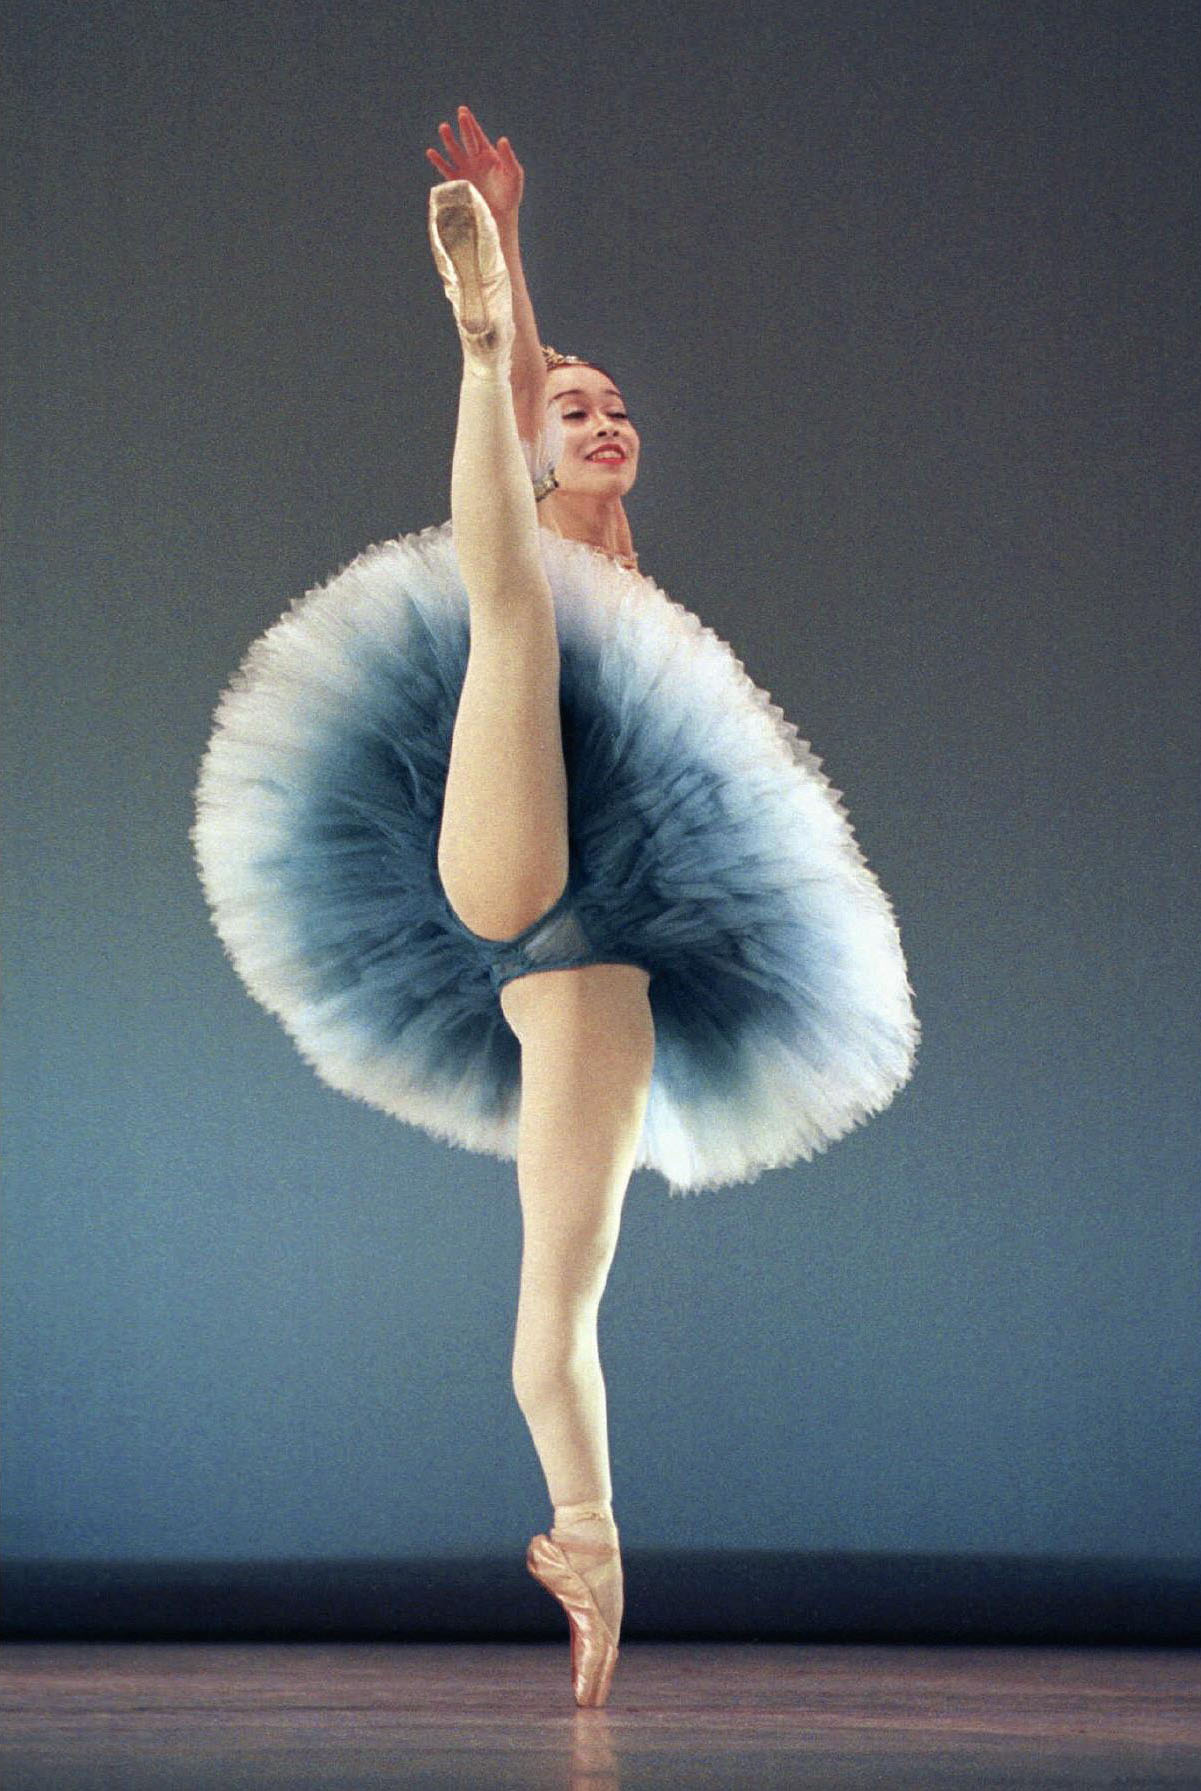 Japanese ballet dancer